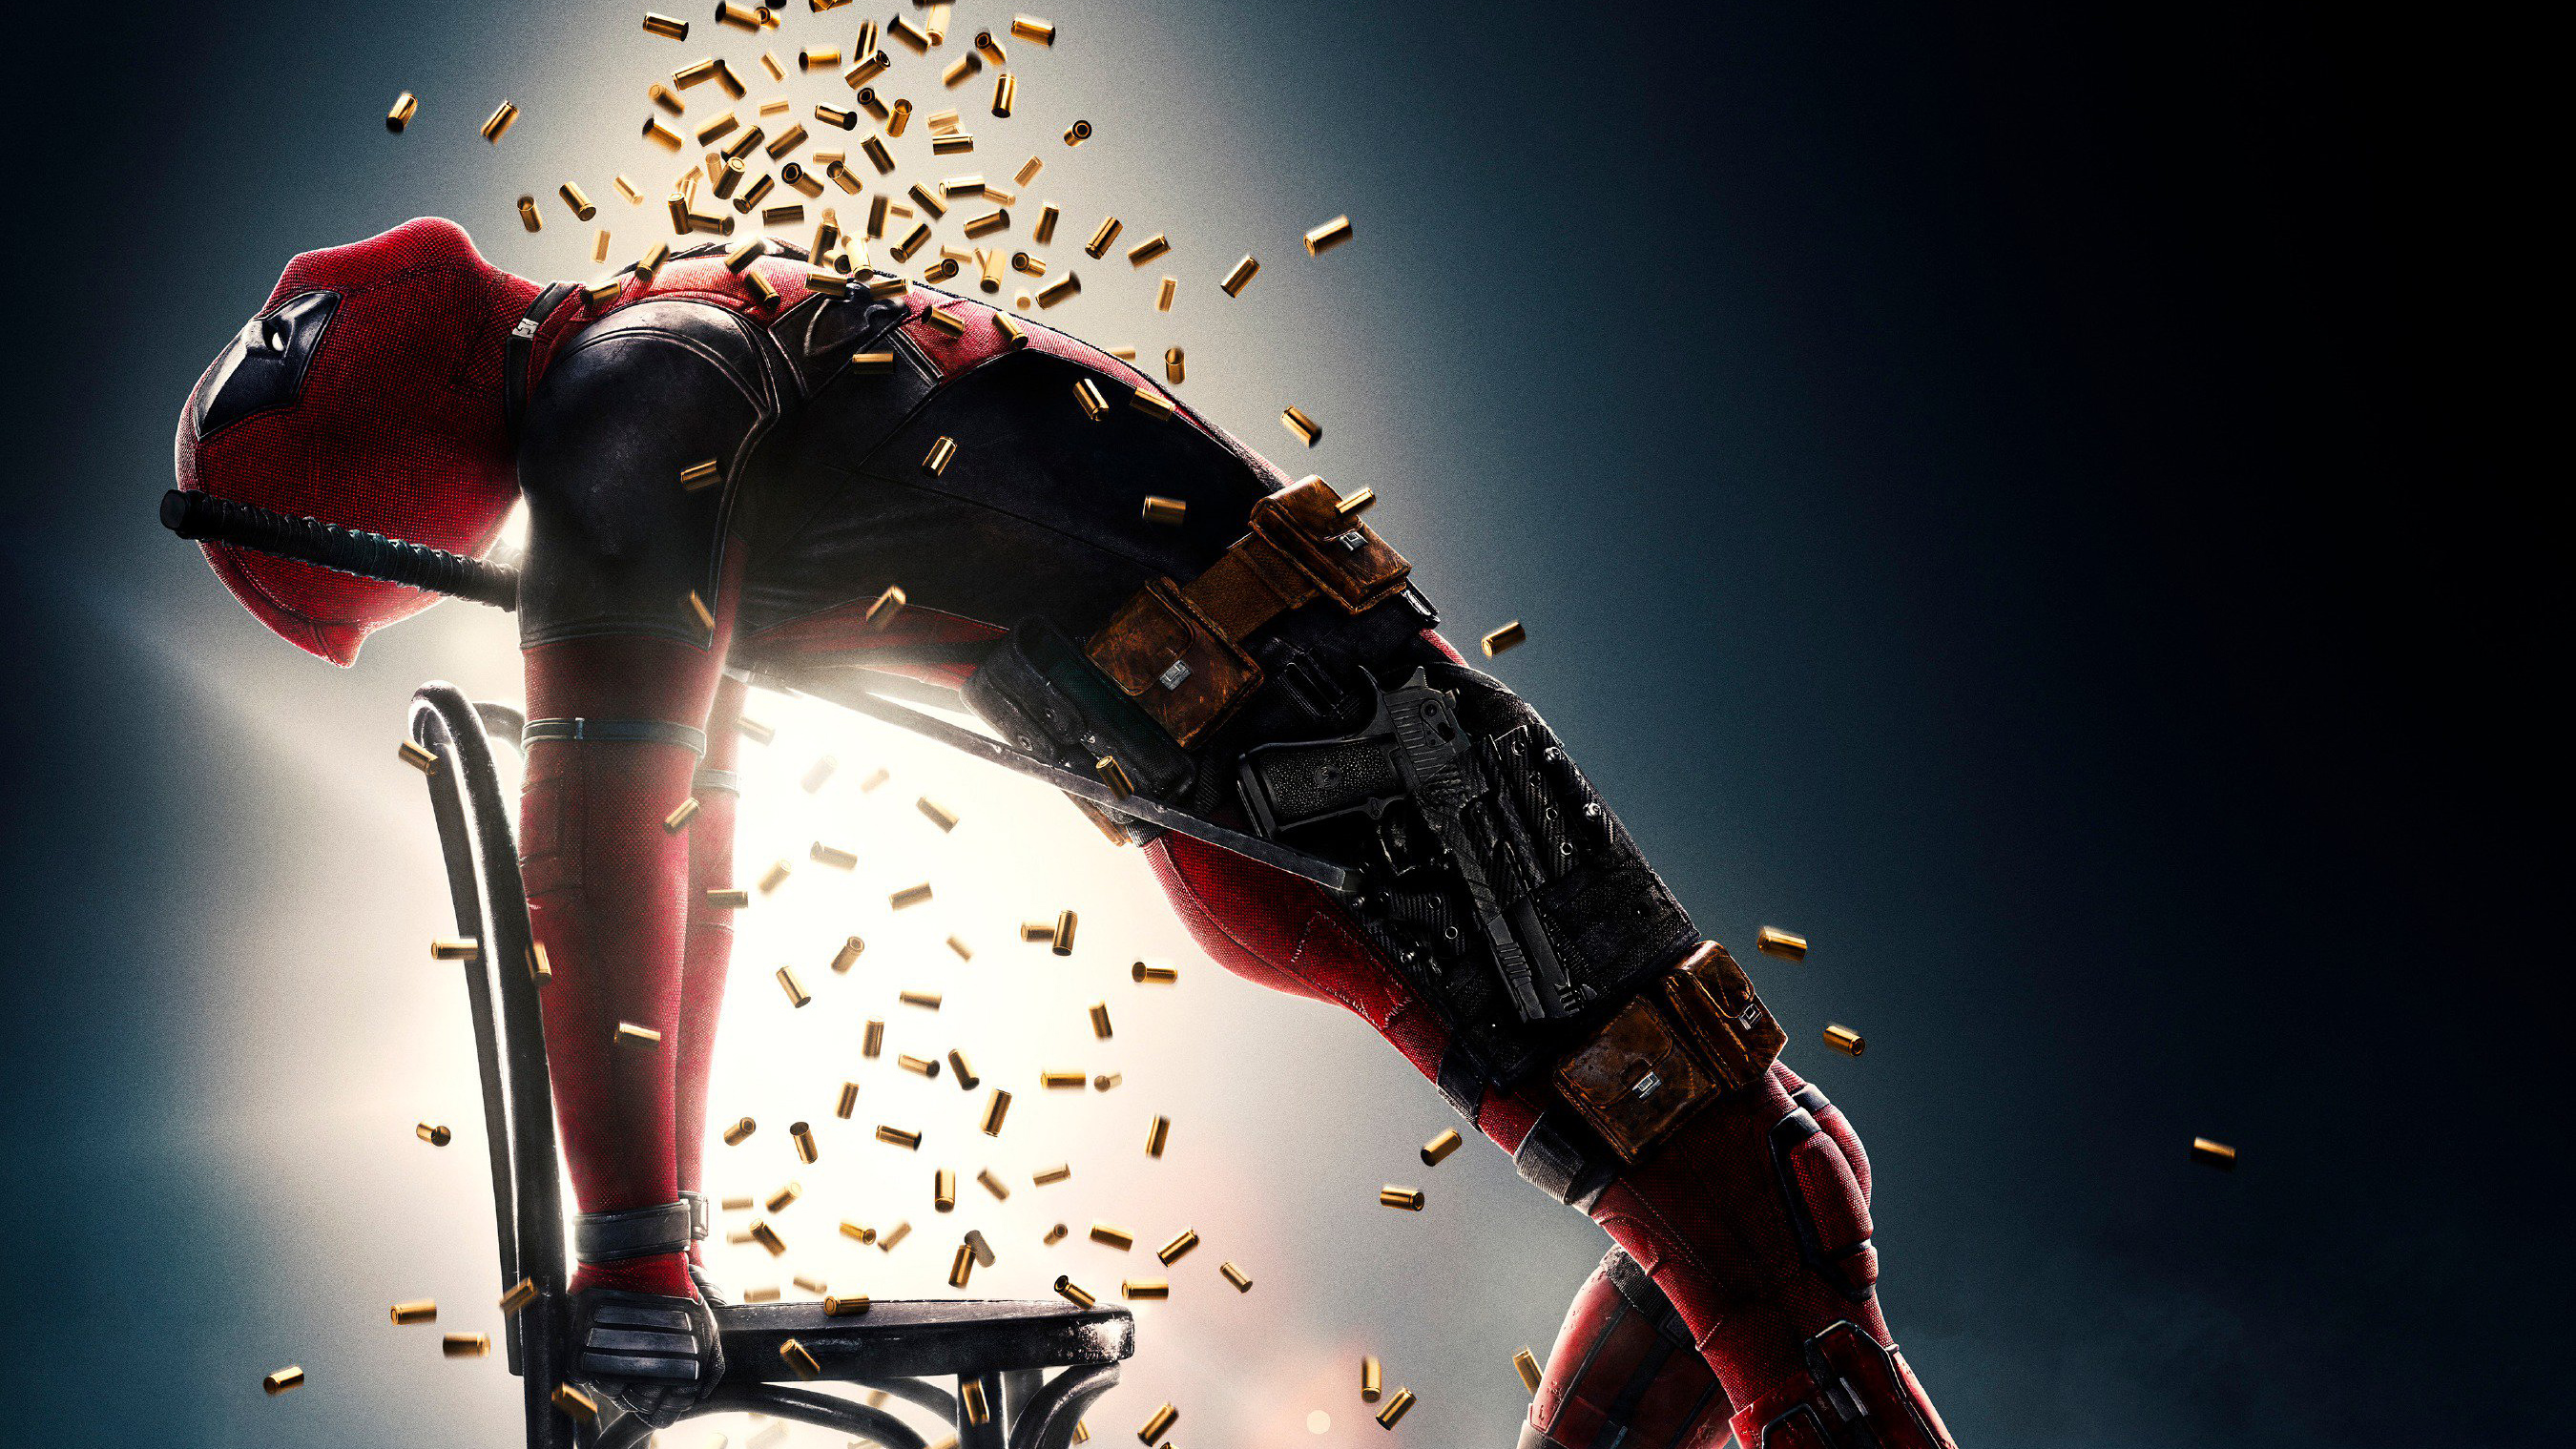 Deadpool 2 Poster 2018 Movie Hd Movies 4k Wallpapers Images